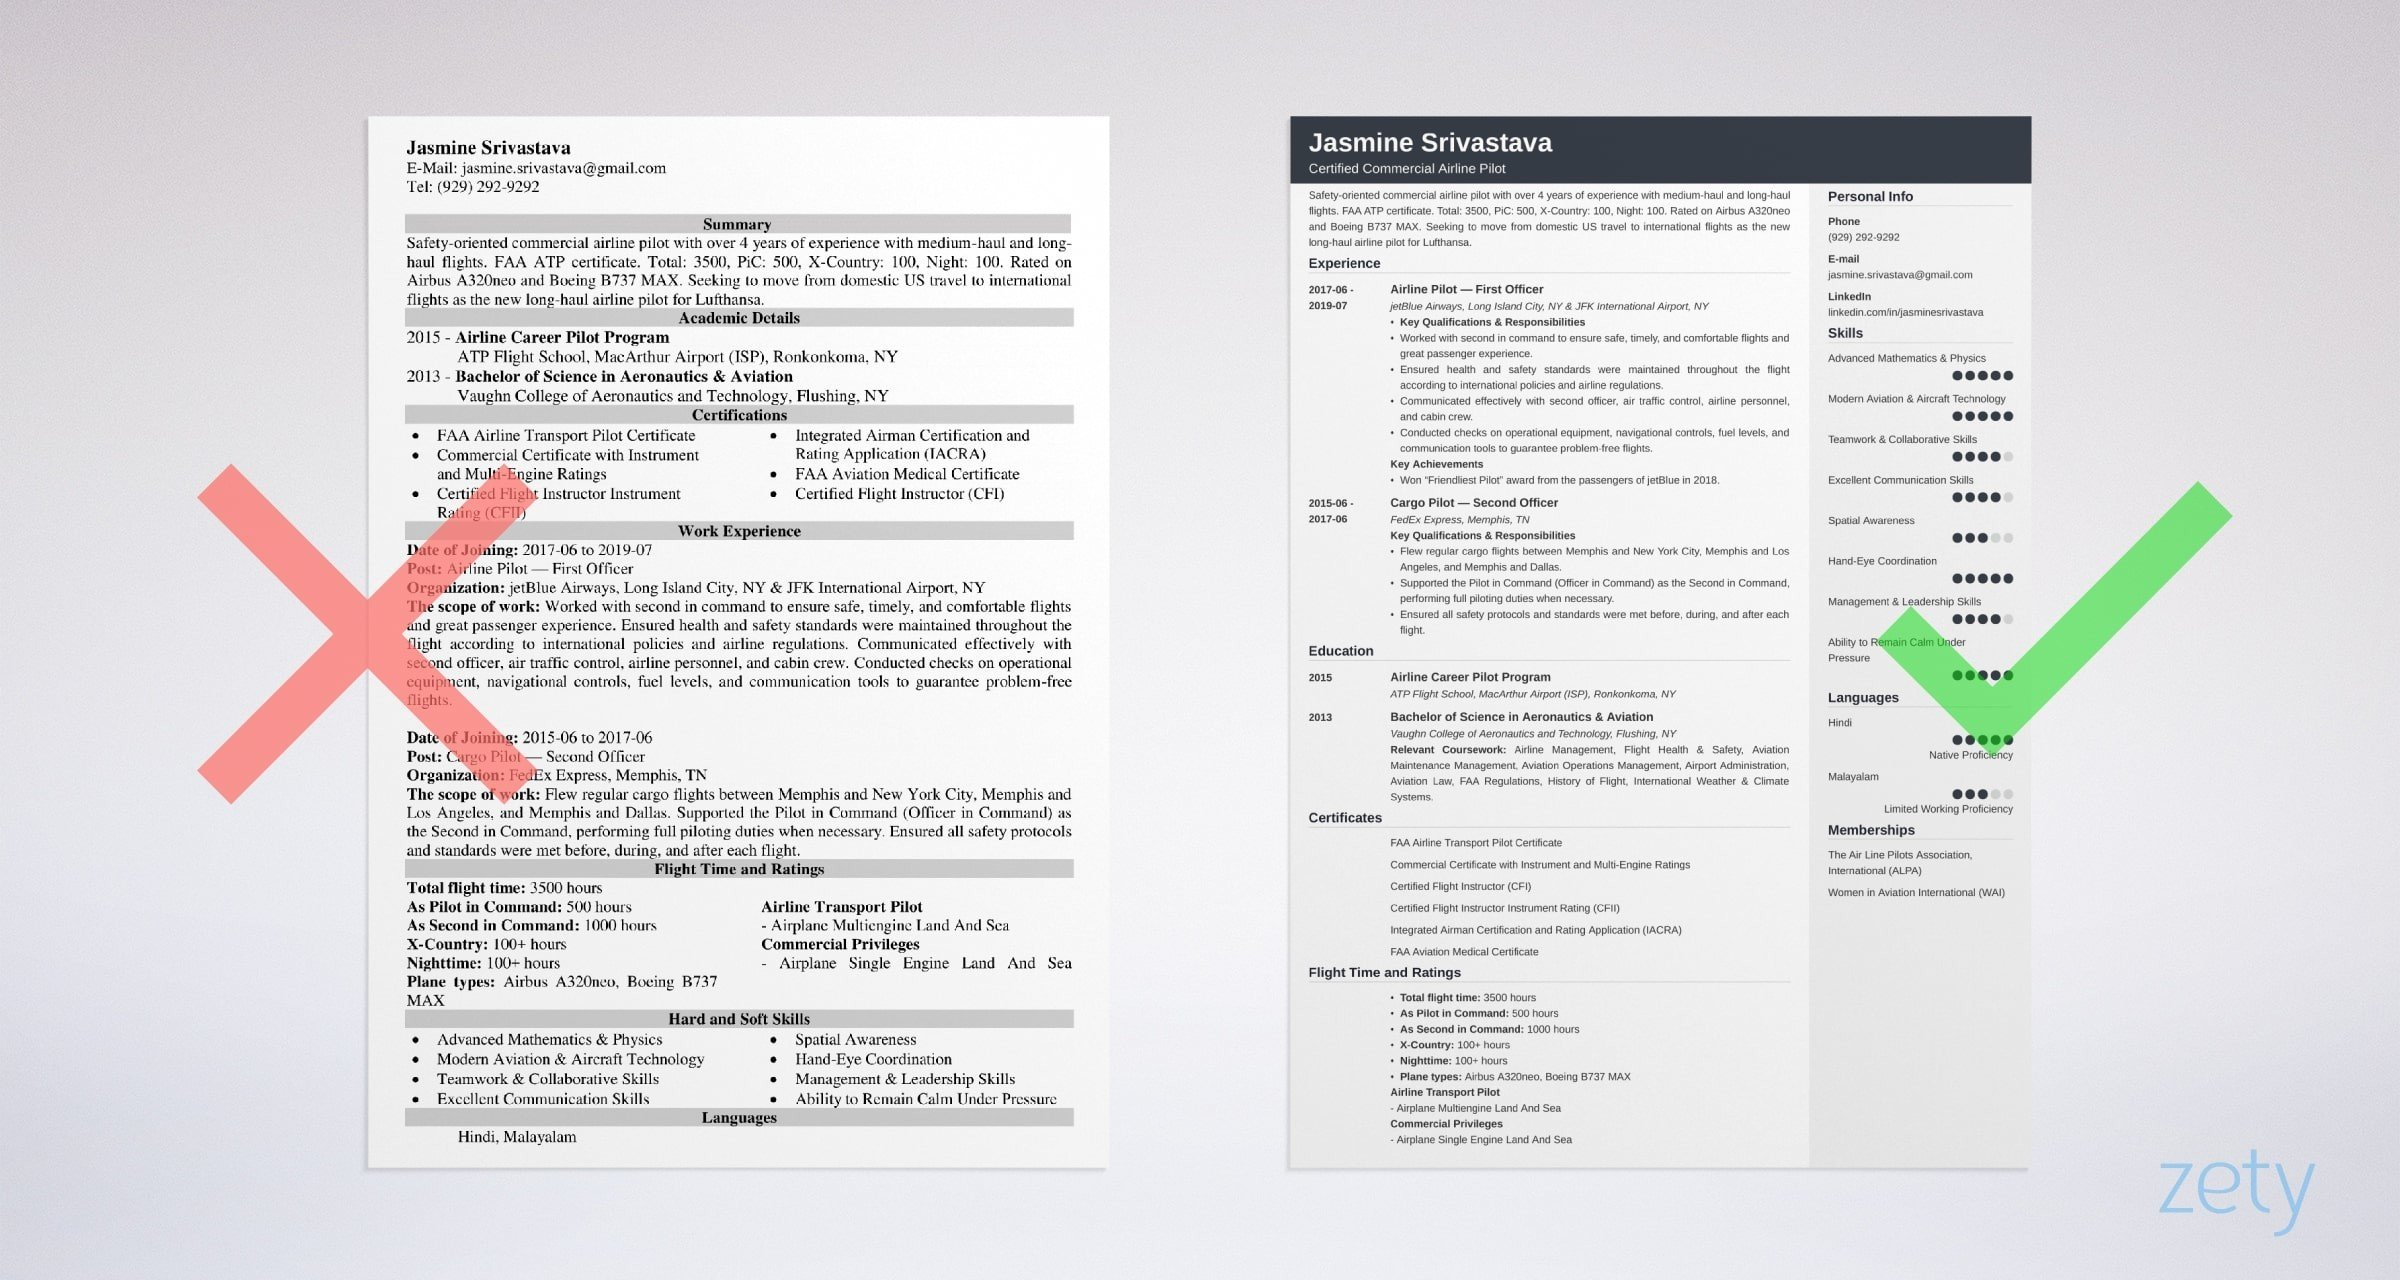 Pilot Resume Template & Examples for Aviation Professionals